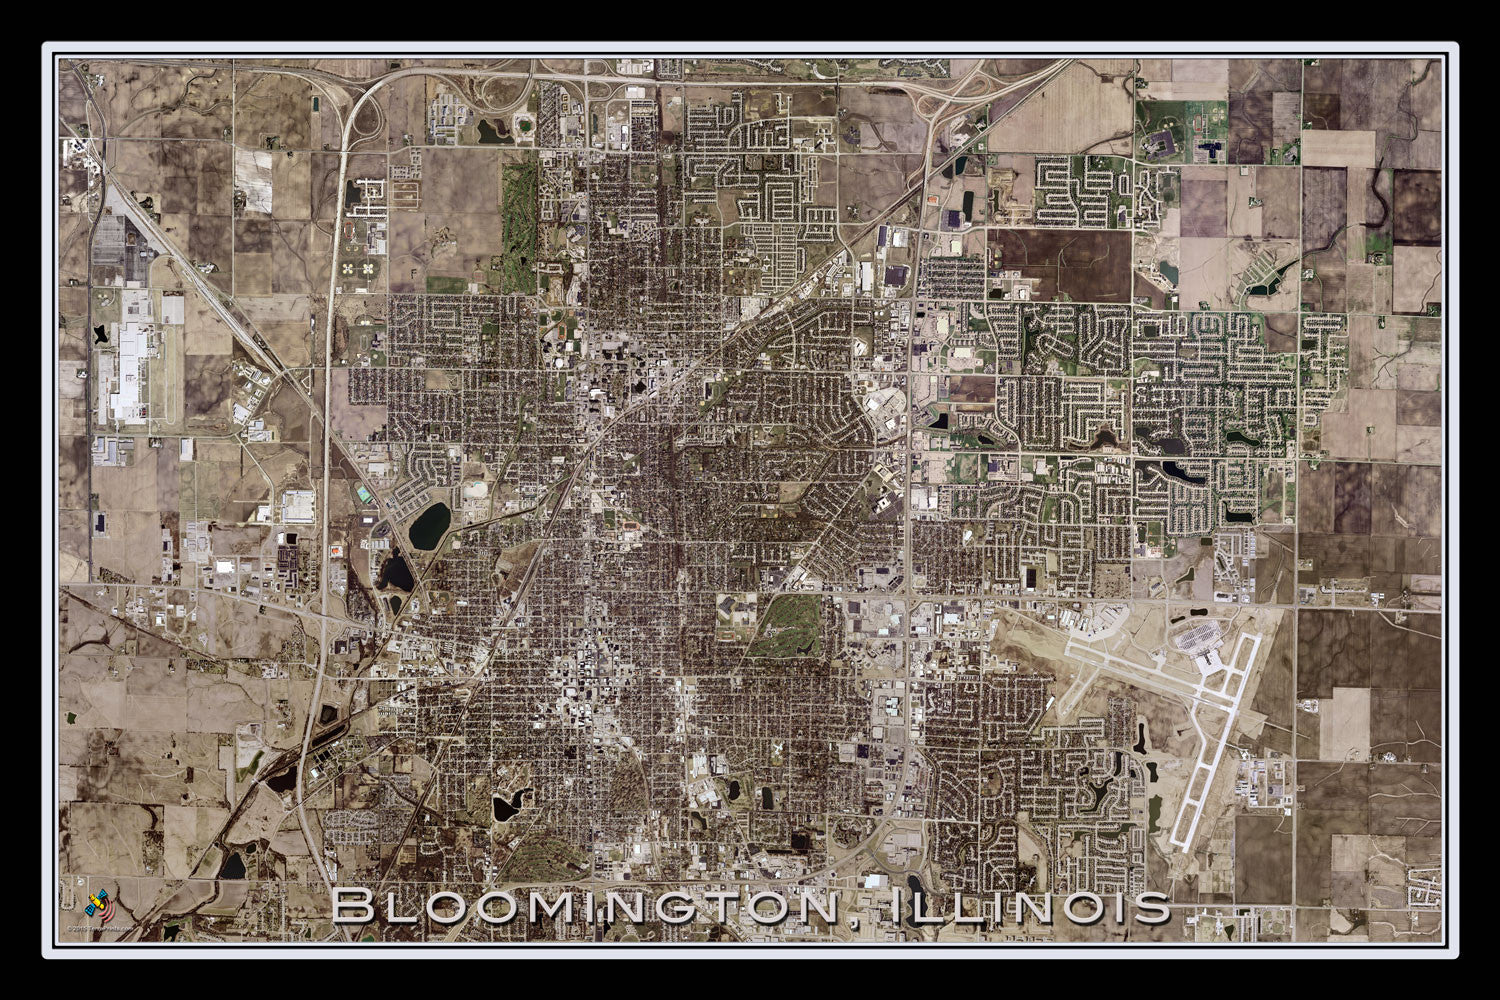 Bloomington Illinois Satellite Poster Map - TerraPrints.com